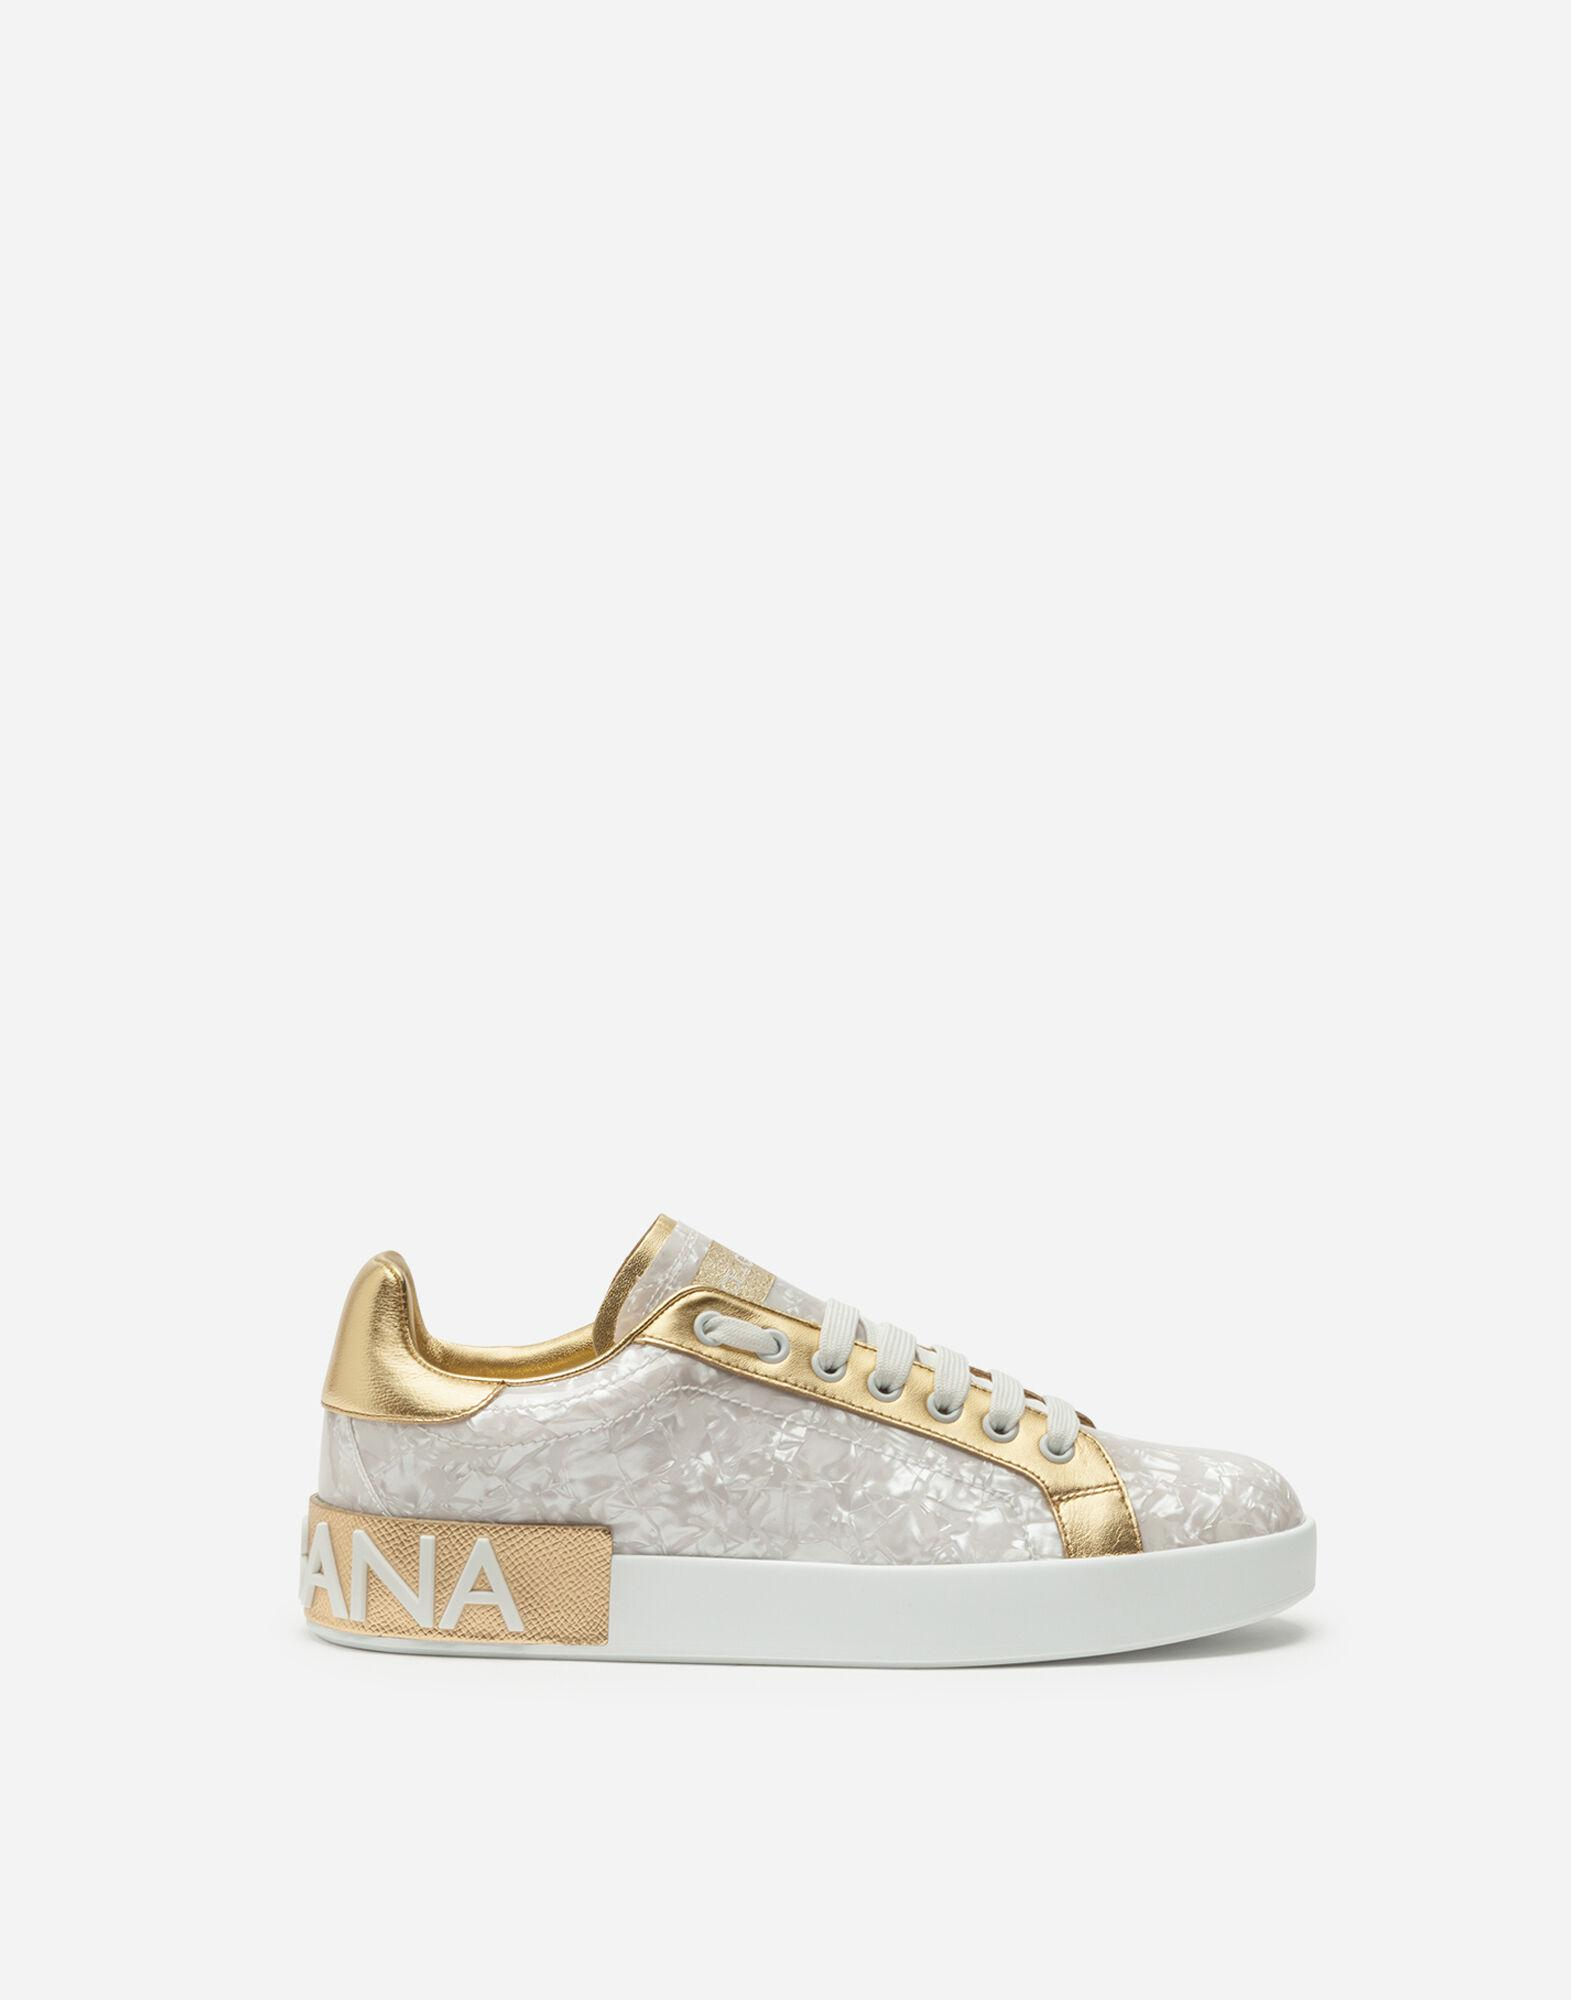 Portofino sneakers in mother-of-pearl print patent leather